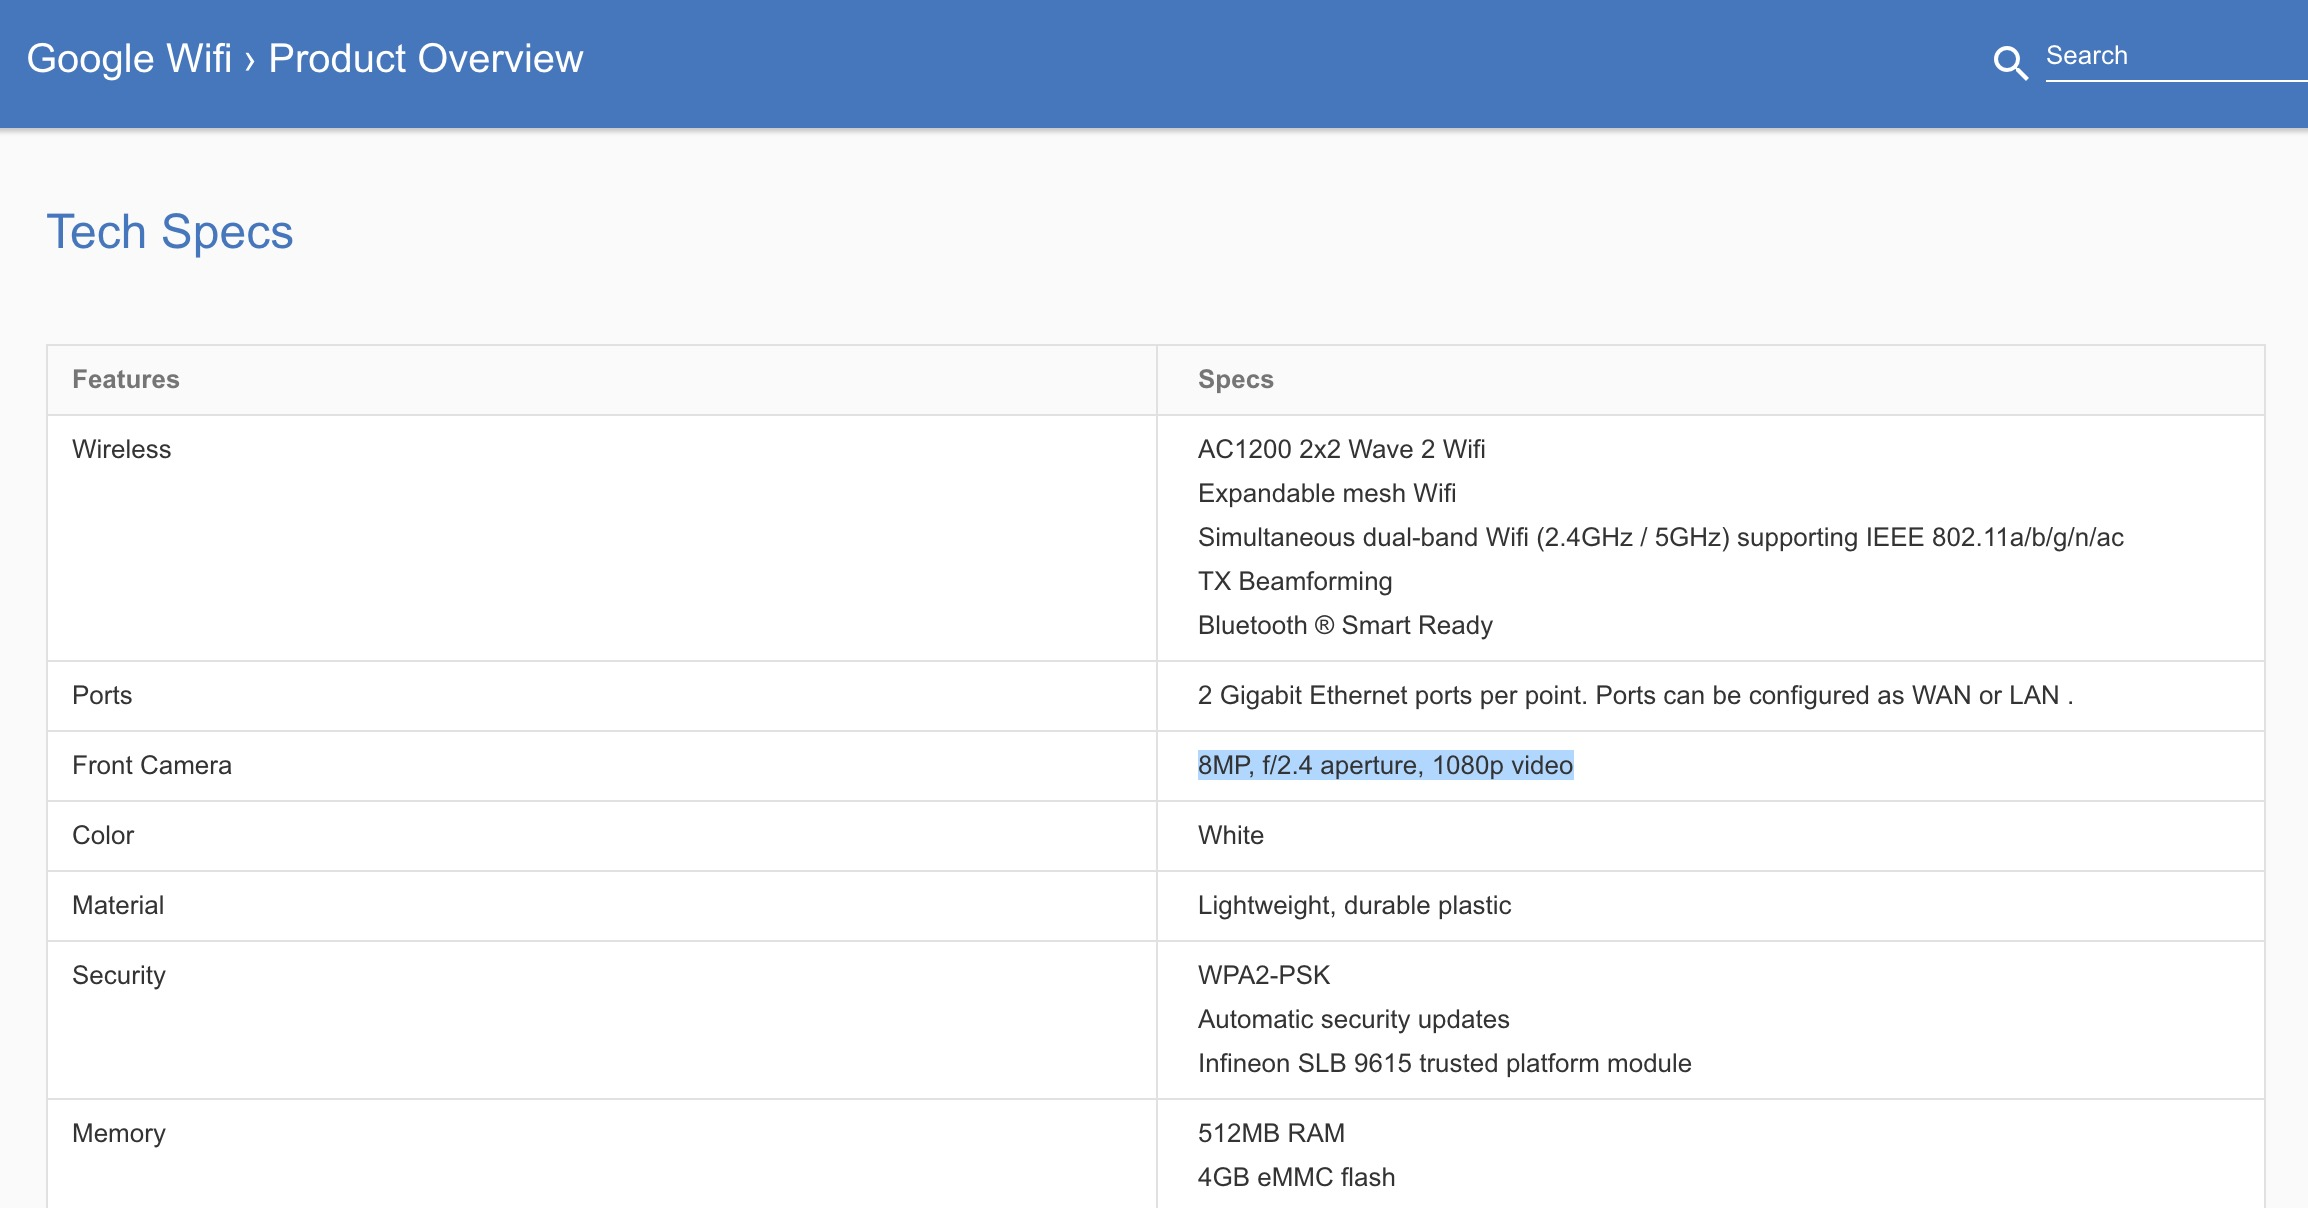 Google WiFi hardware page lists 8MP camera feature